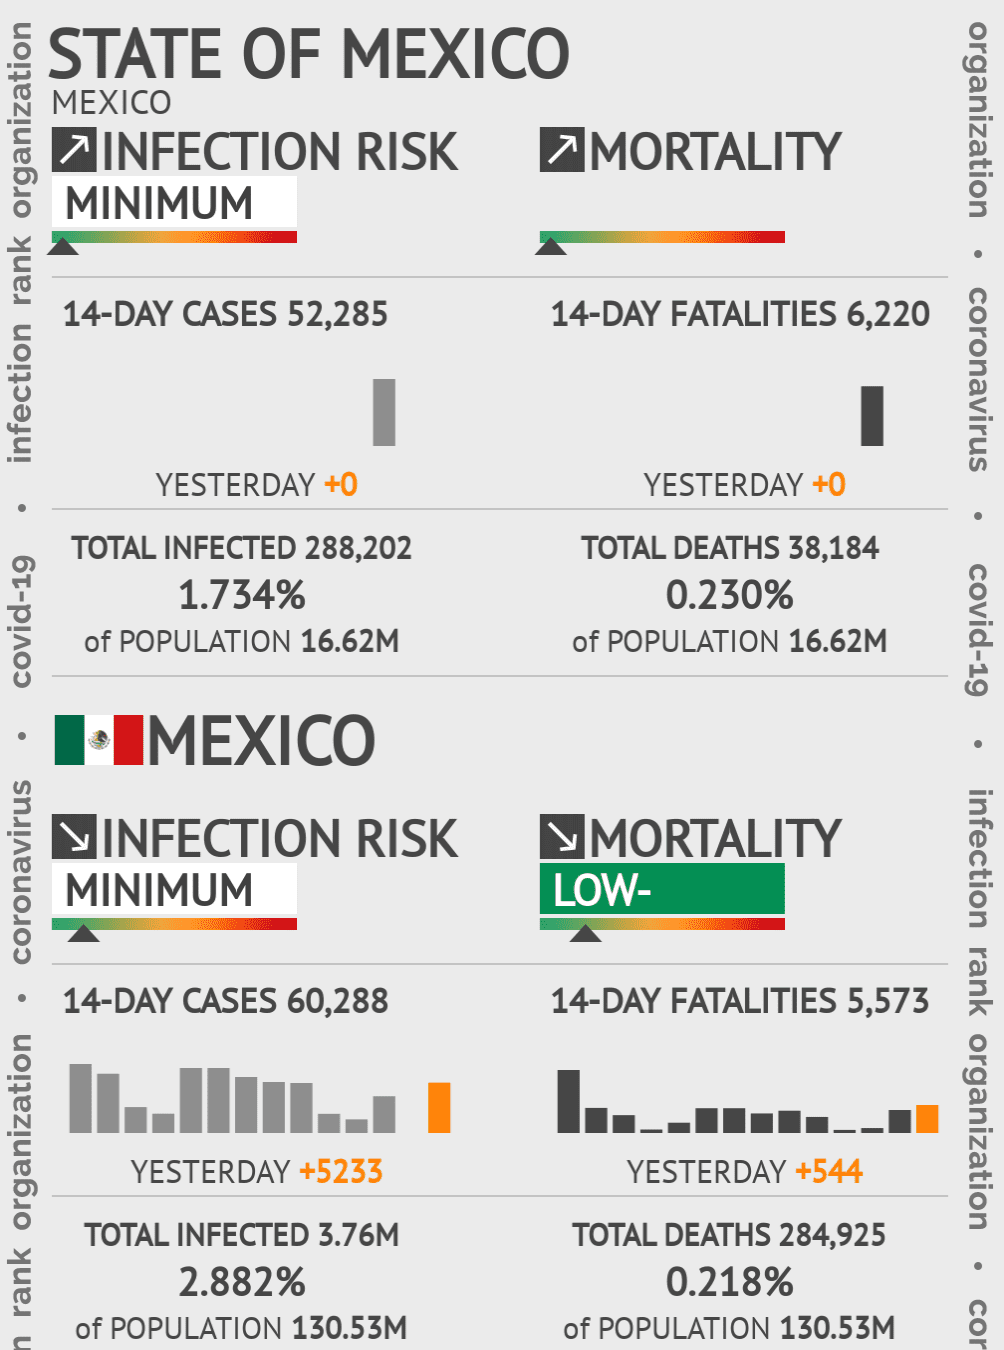 State of Mexico Coronavirus Covid-19 Risk of Infection on March 03, 2021